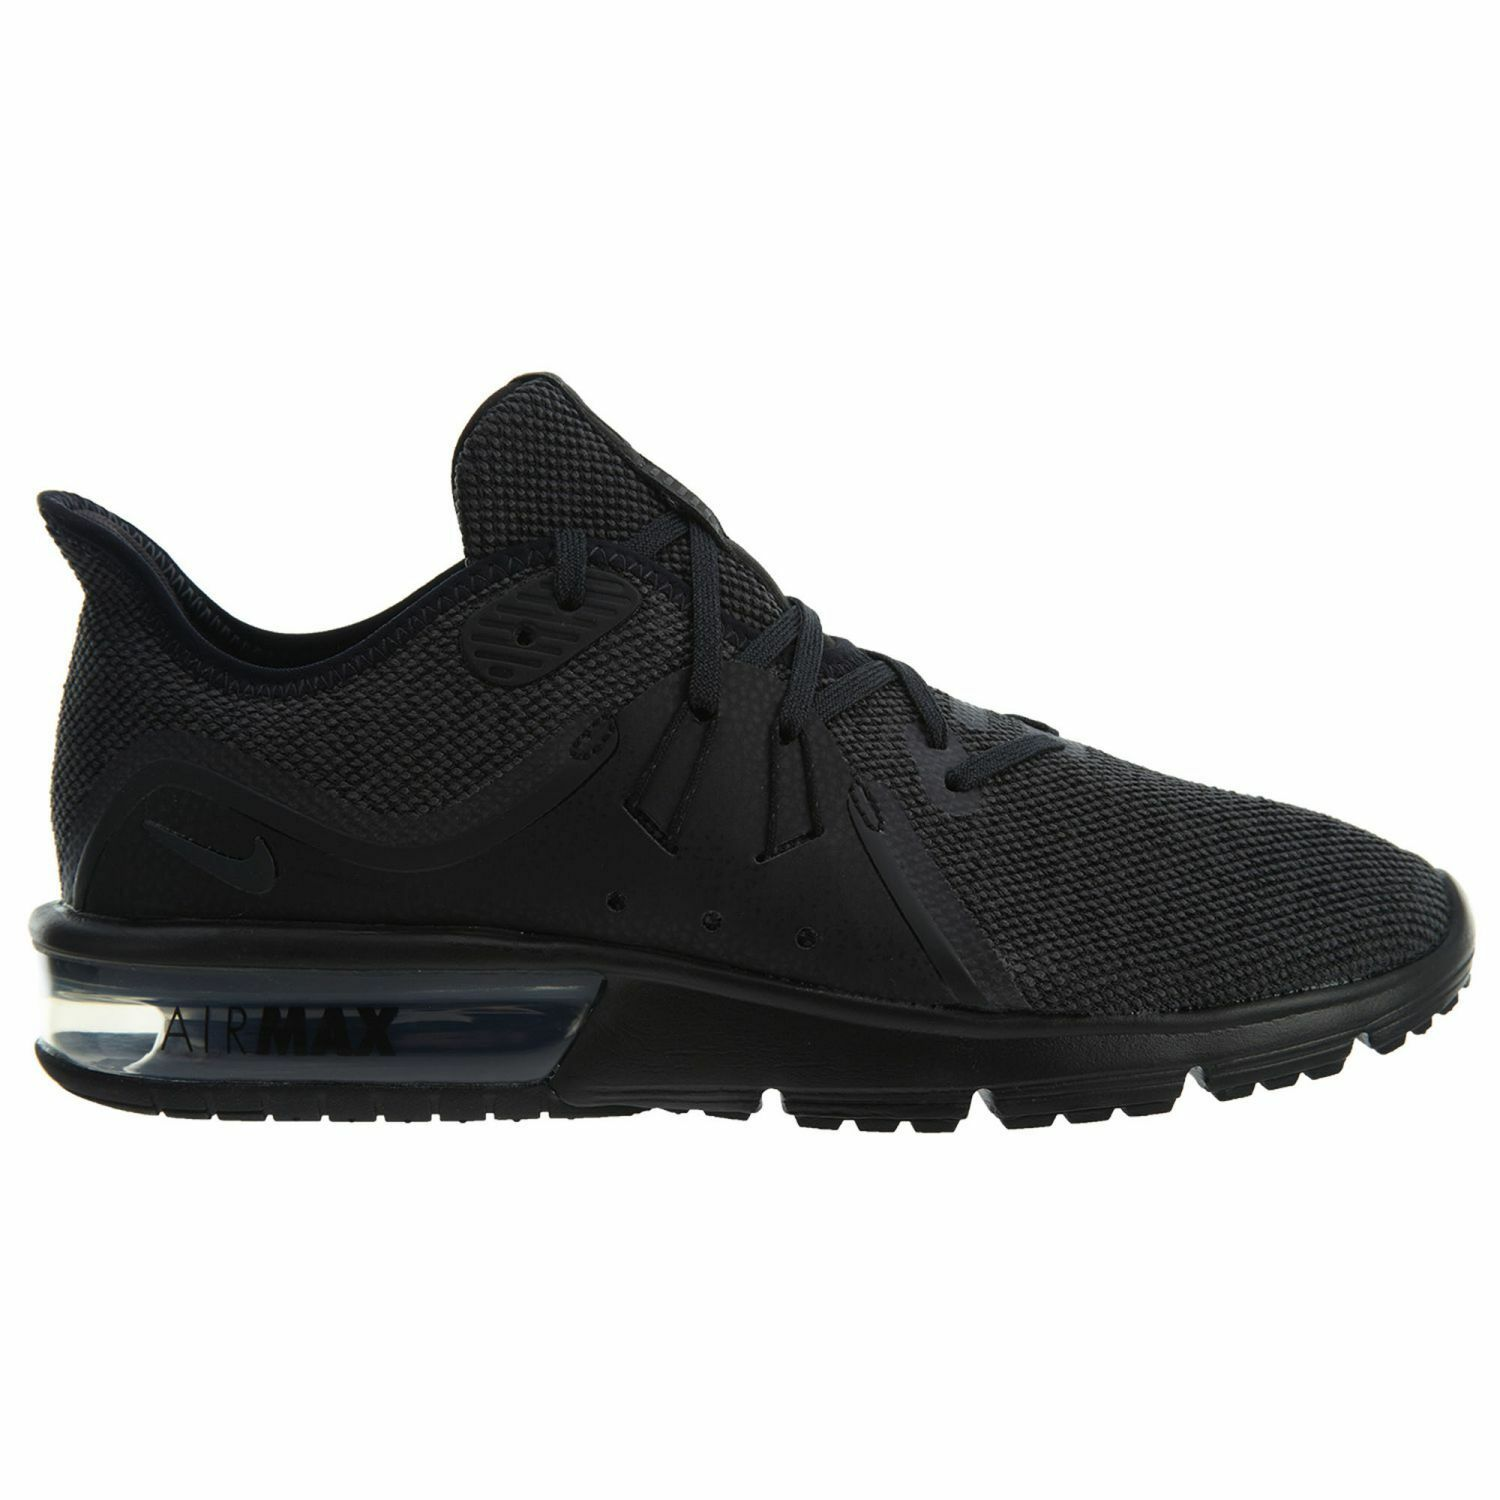 Nike Air Max Sequent 3 Womens 908993-010 Black Knit Running Shoes Comfortable Seasonal price cuts, discount benefits